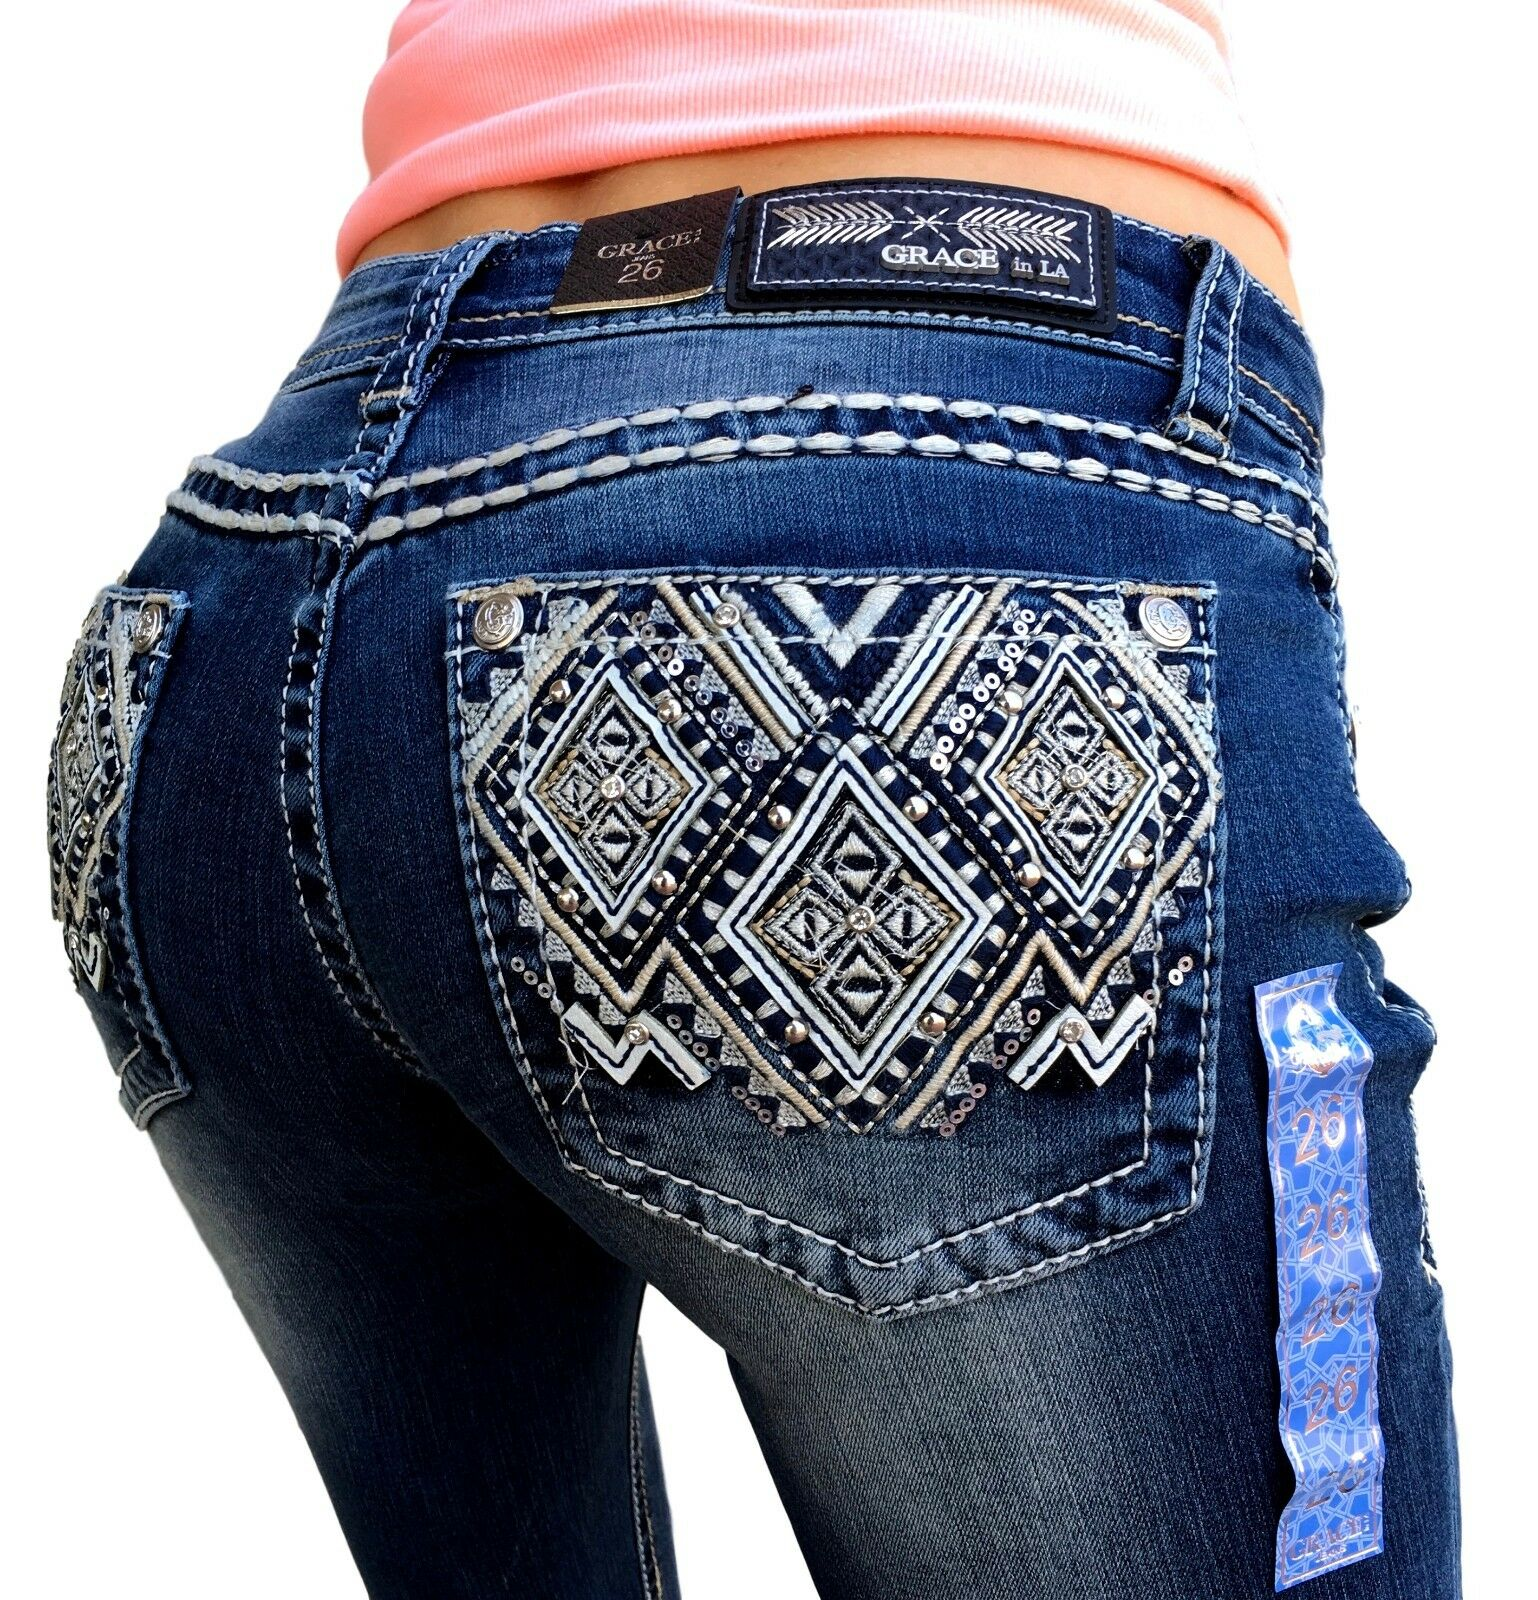 NWT Grace In LA Jeans Mid Rise Easy Bootcut Diamonds Stretch 28 29 30 31 32 33